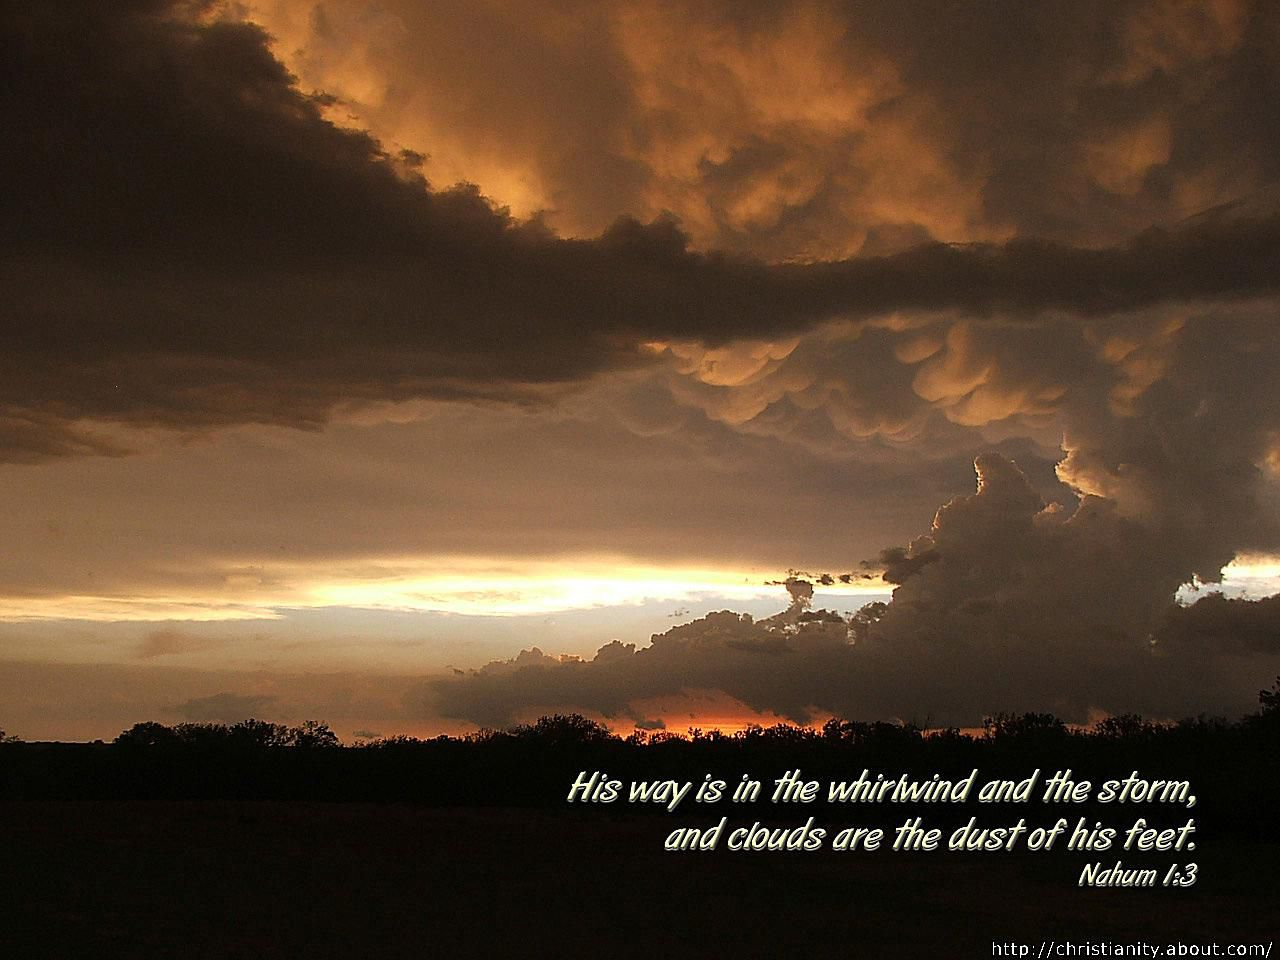 Enjoy Free Desktop Wallpaper With Bible Verses And Pictures Storm Clouds Image C Bill Fairchild